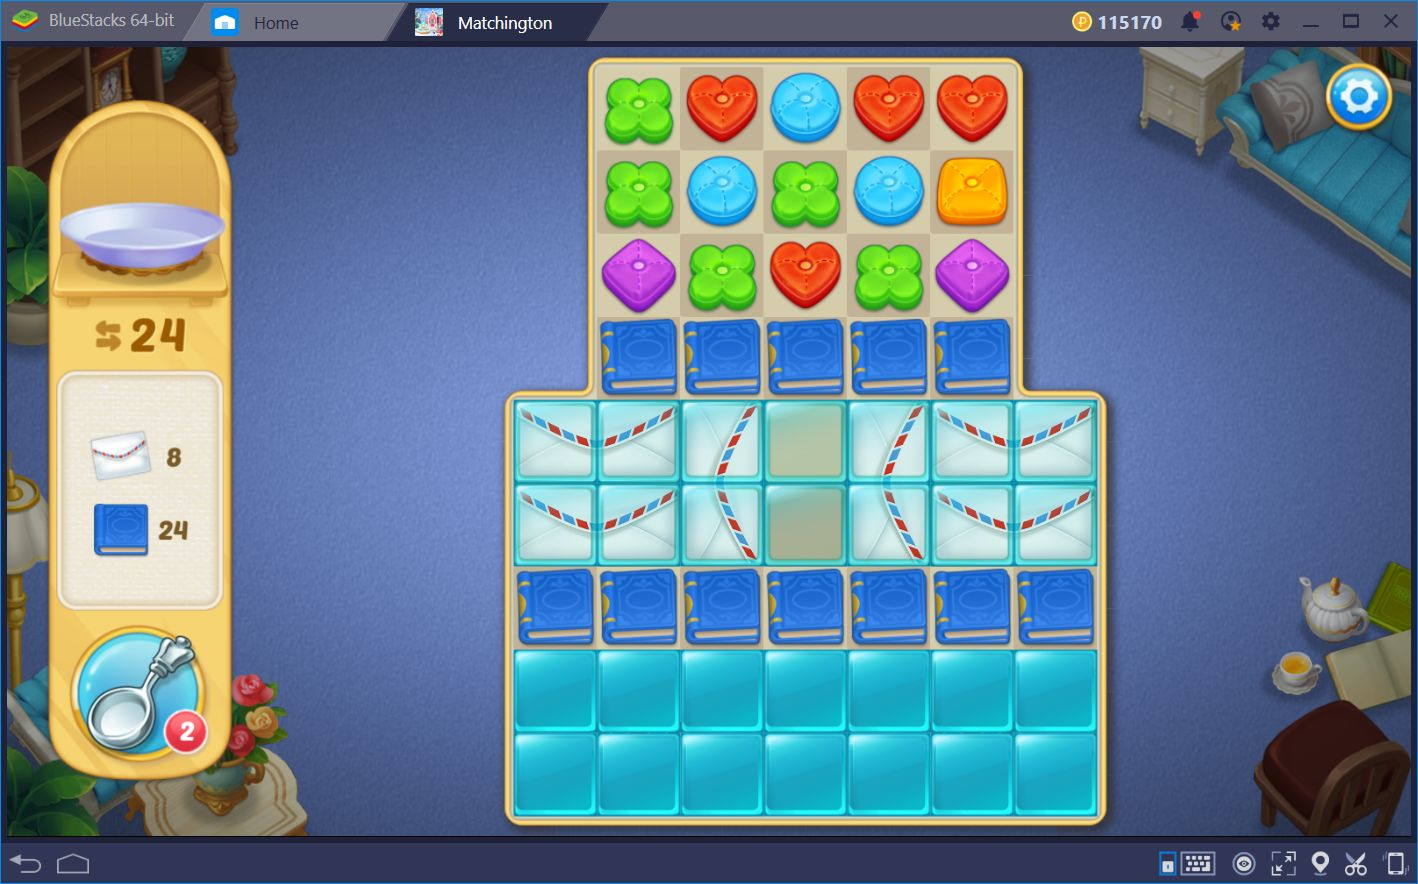 Combine Pillows and Blow Up the Boards in Matchington Mansion with BlueStacks